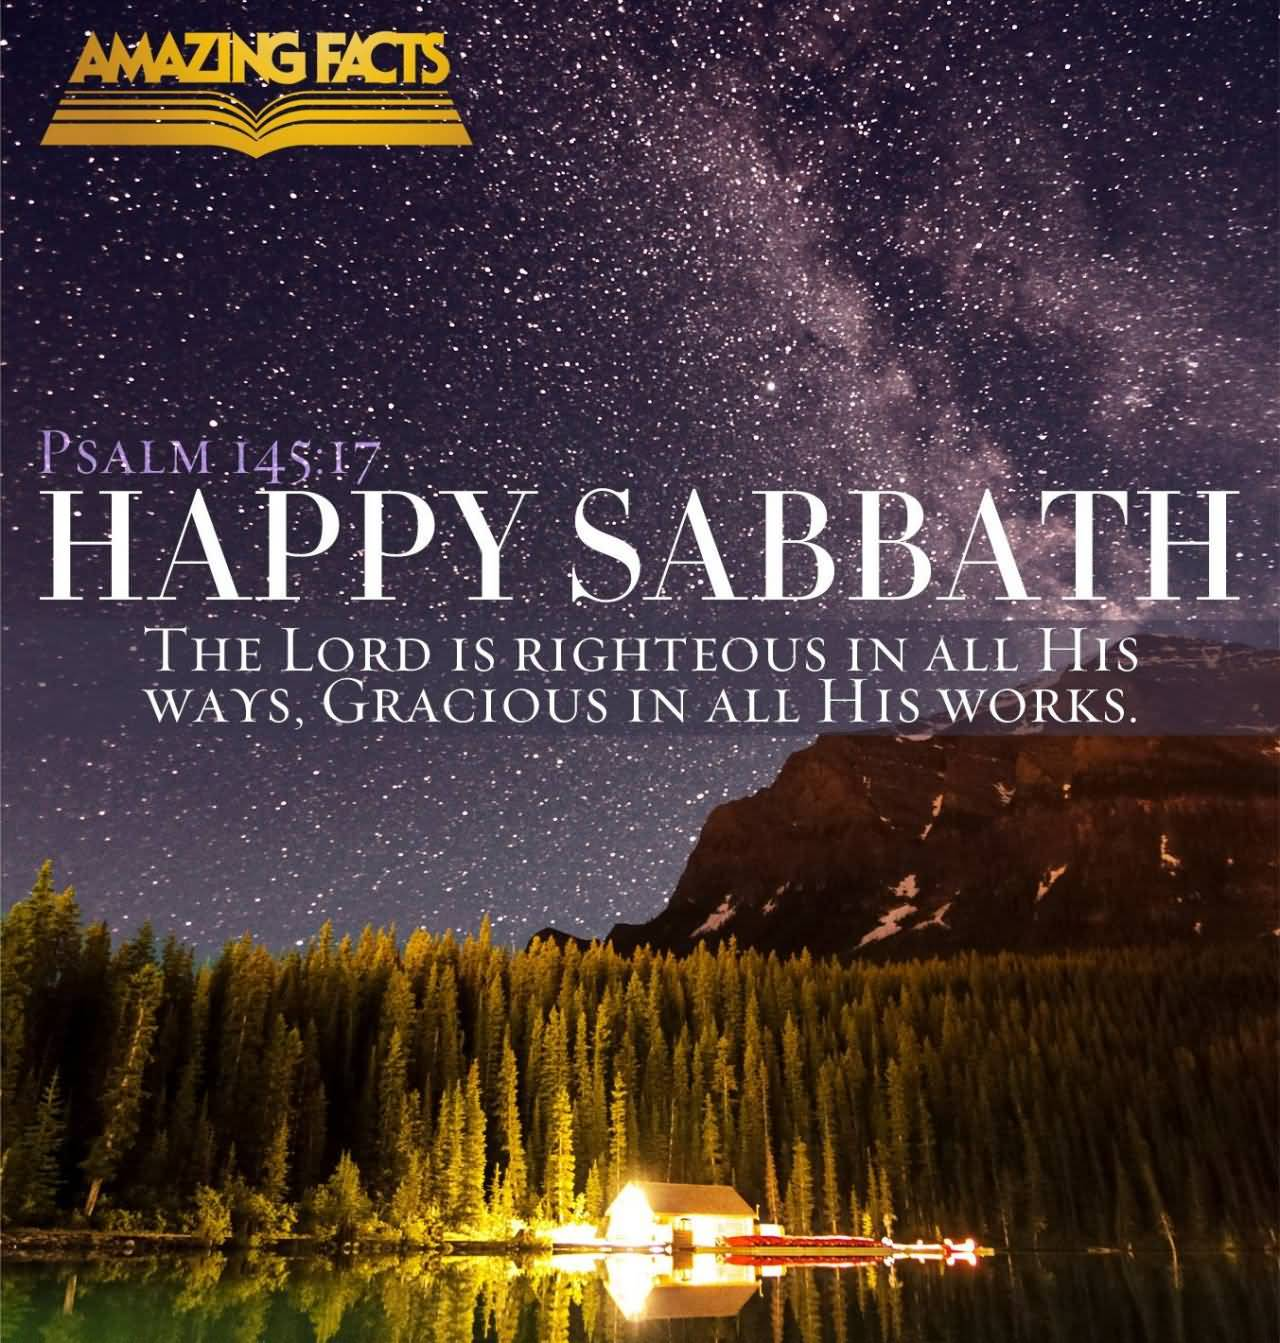 60 shabbat shalom greeting pictures happy sabbath the lord is righteous in all his ways gracious in all his works kristyandbryce Image collections